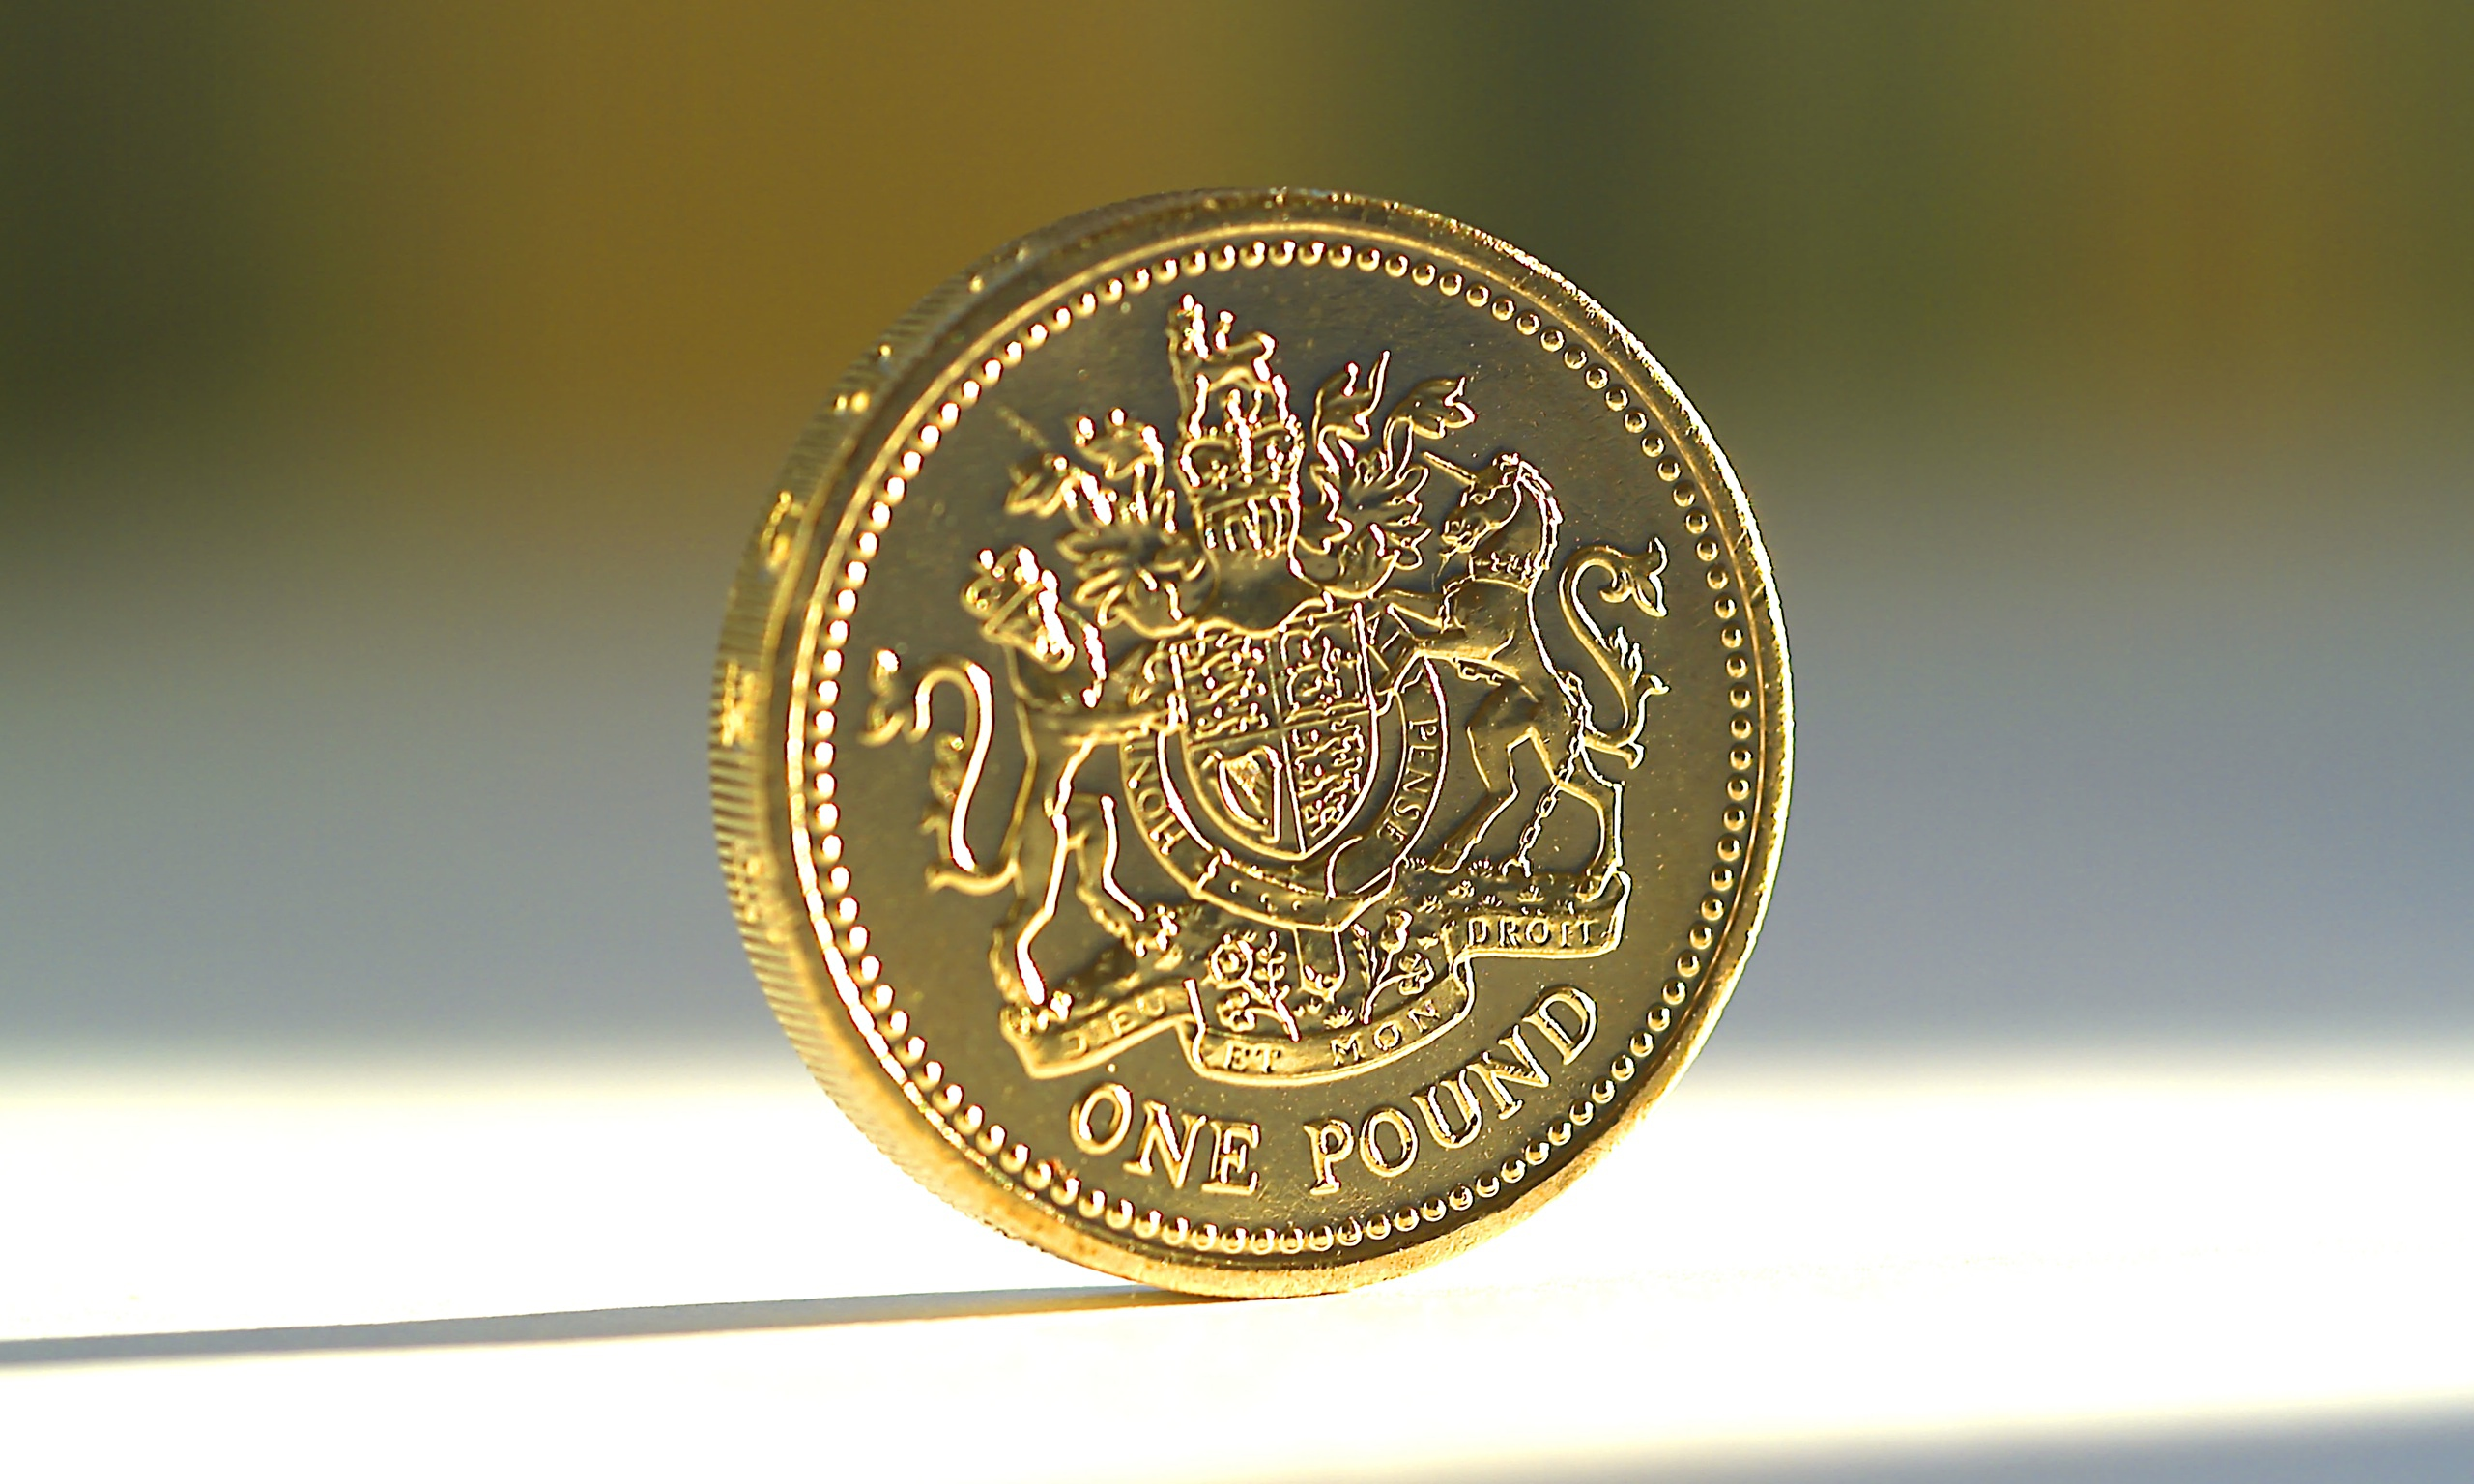 One-pound-coin-014.jpg